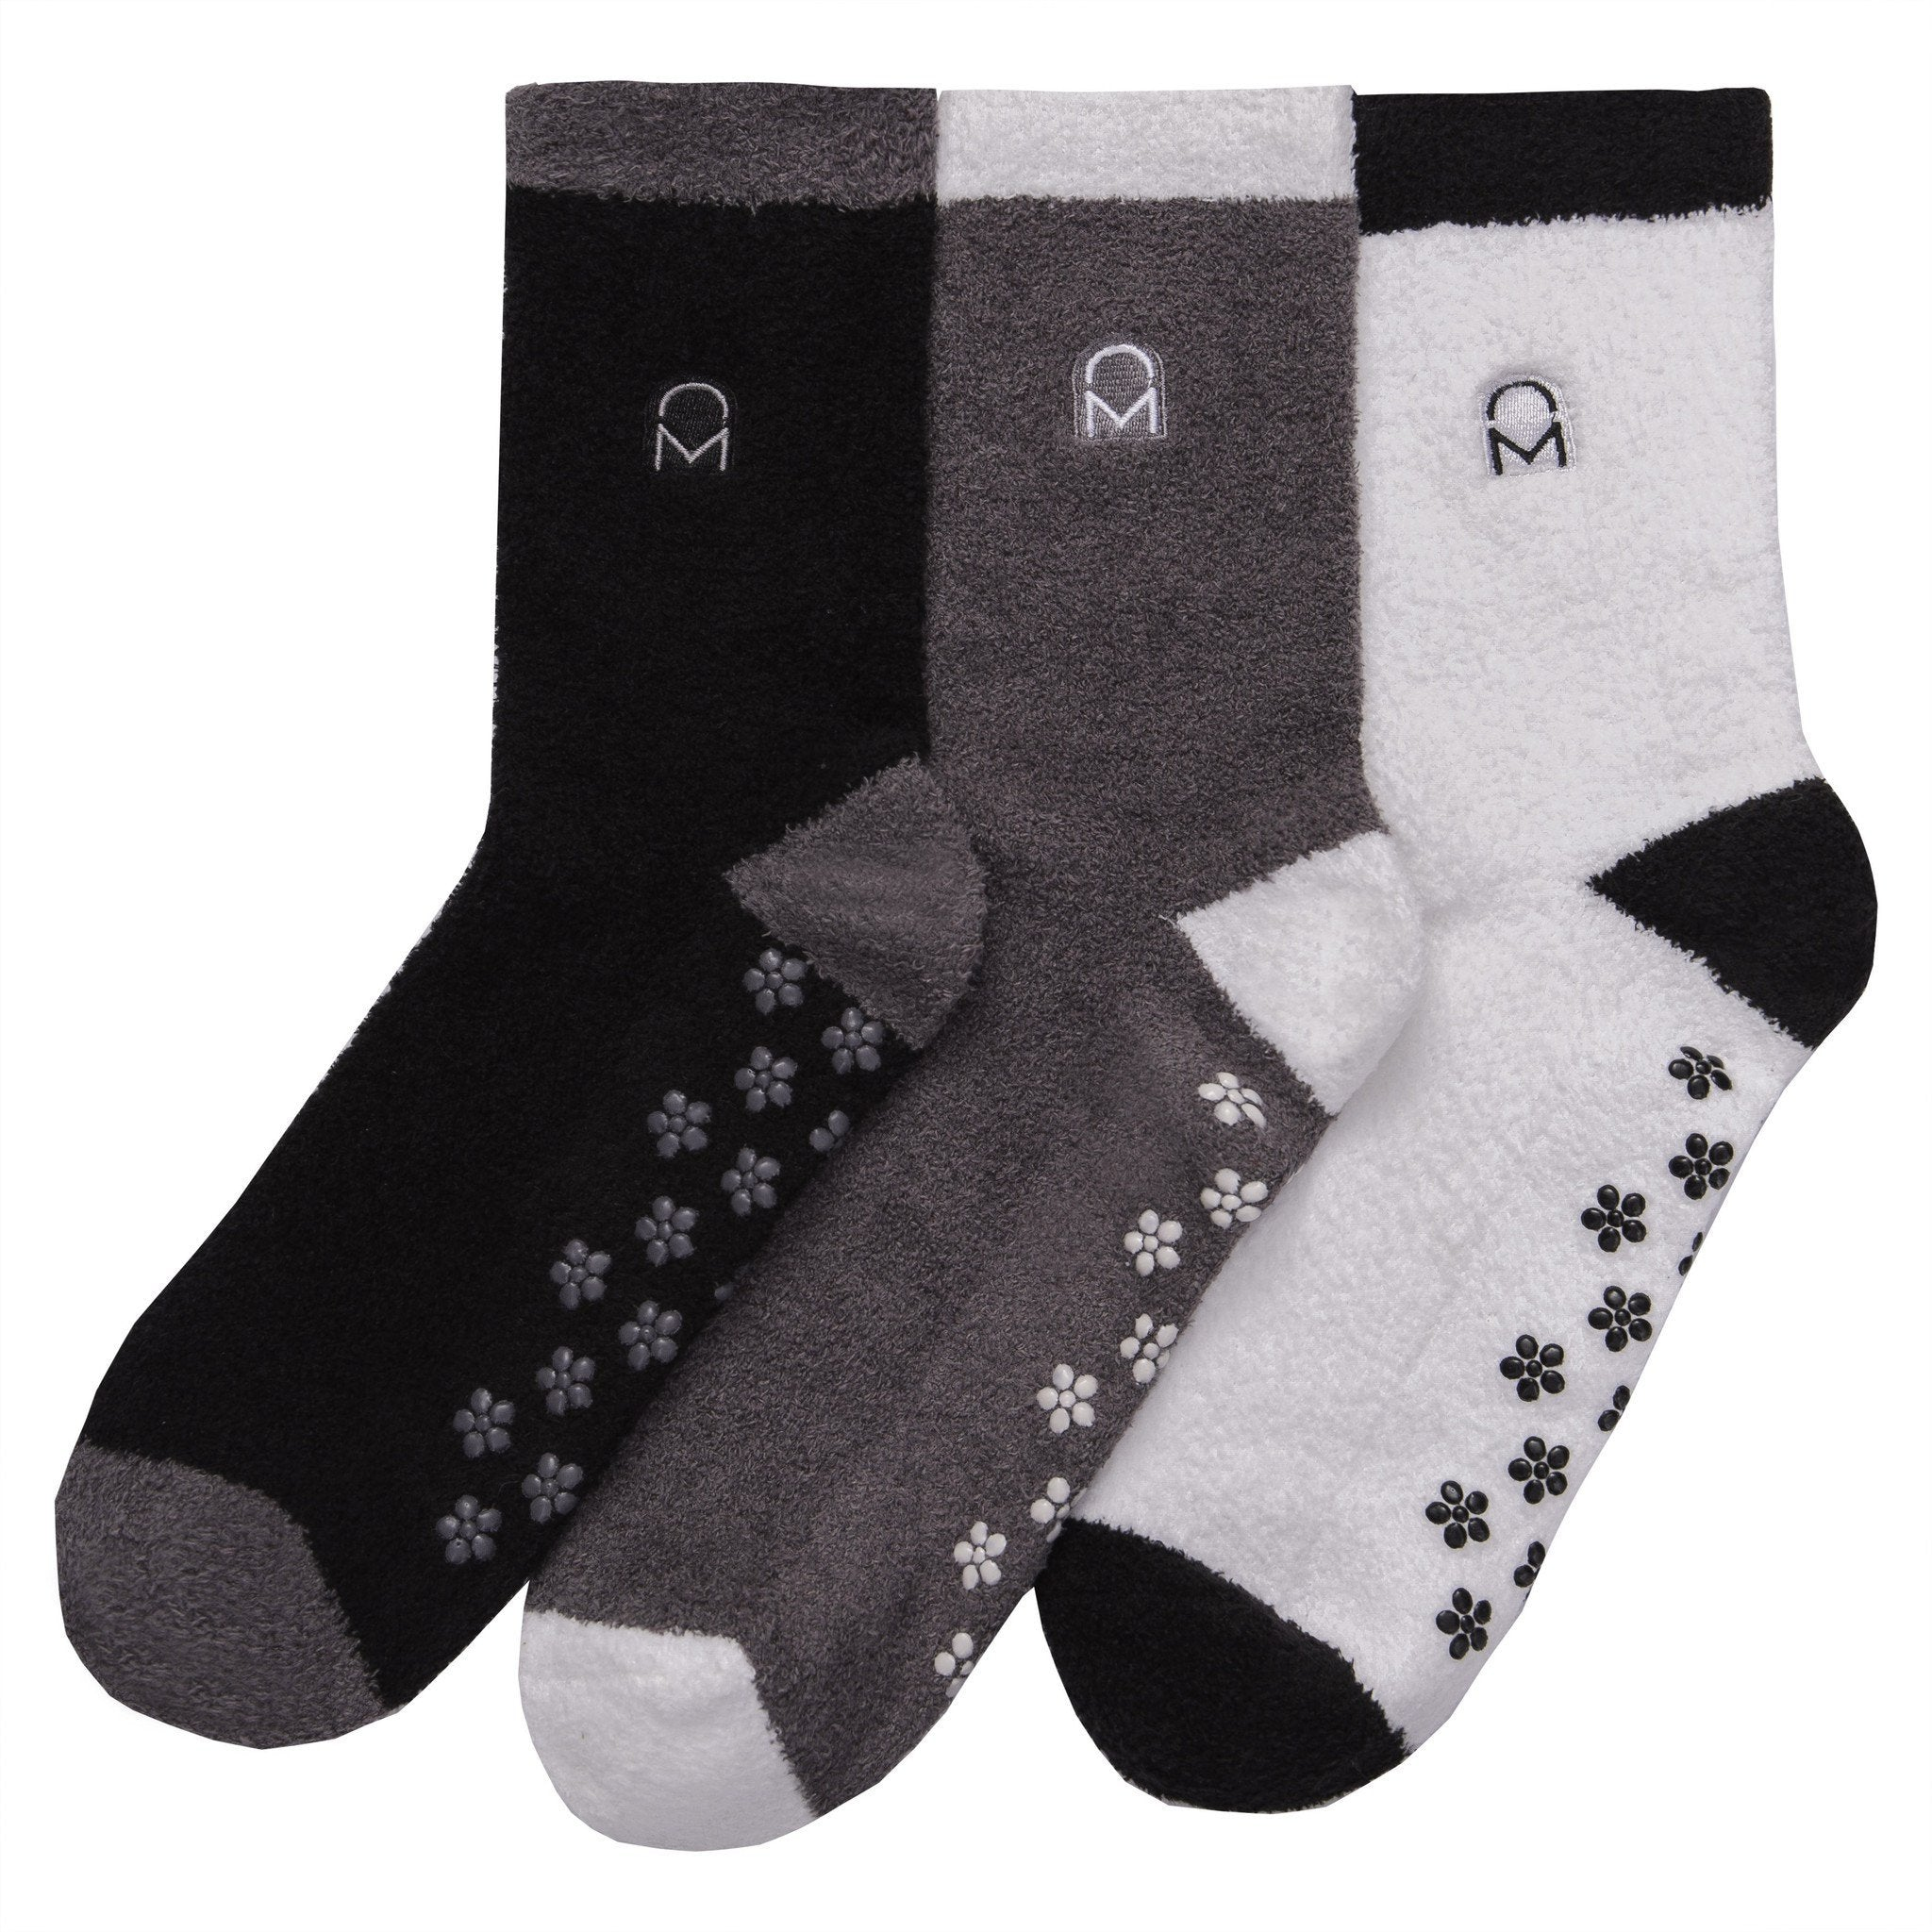 Women's Soft Anti-Skid Micro-Plush Winter Crew Socks - Set C3